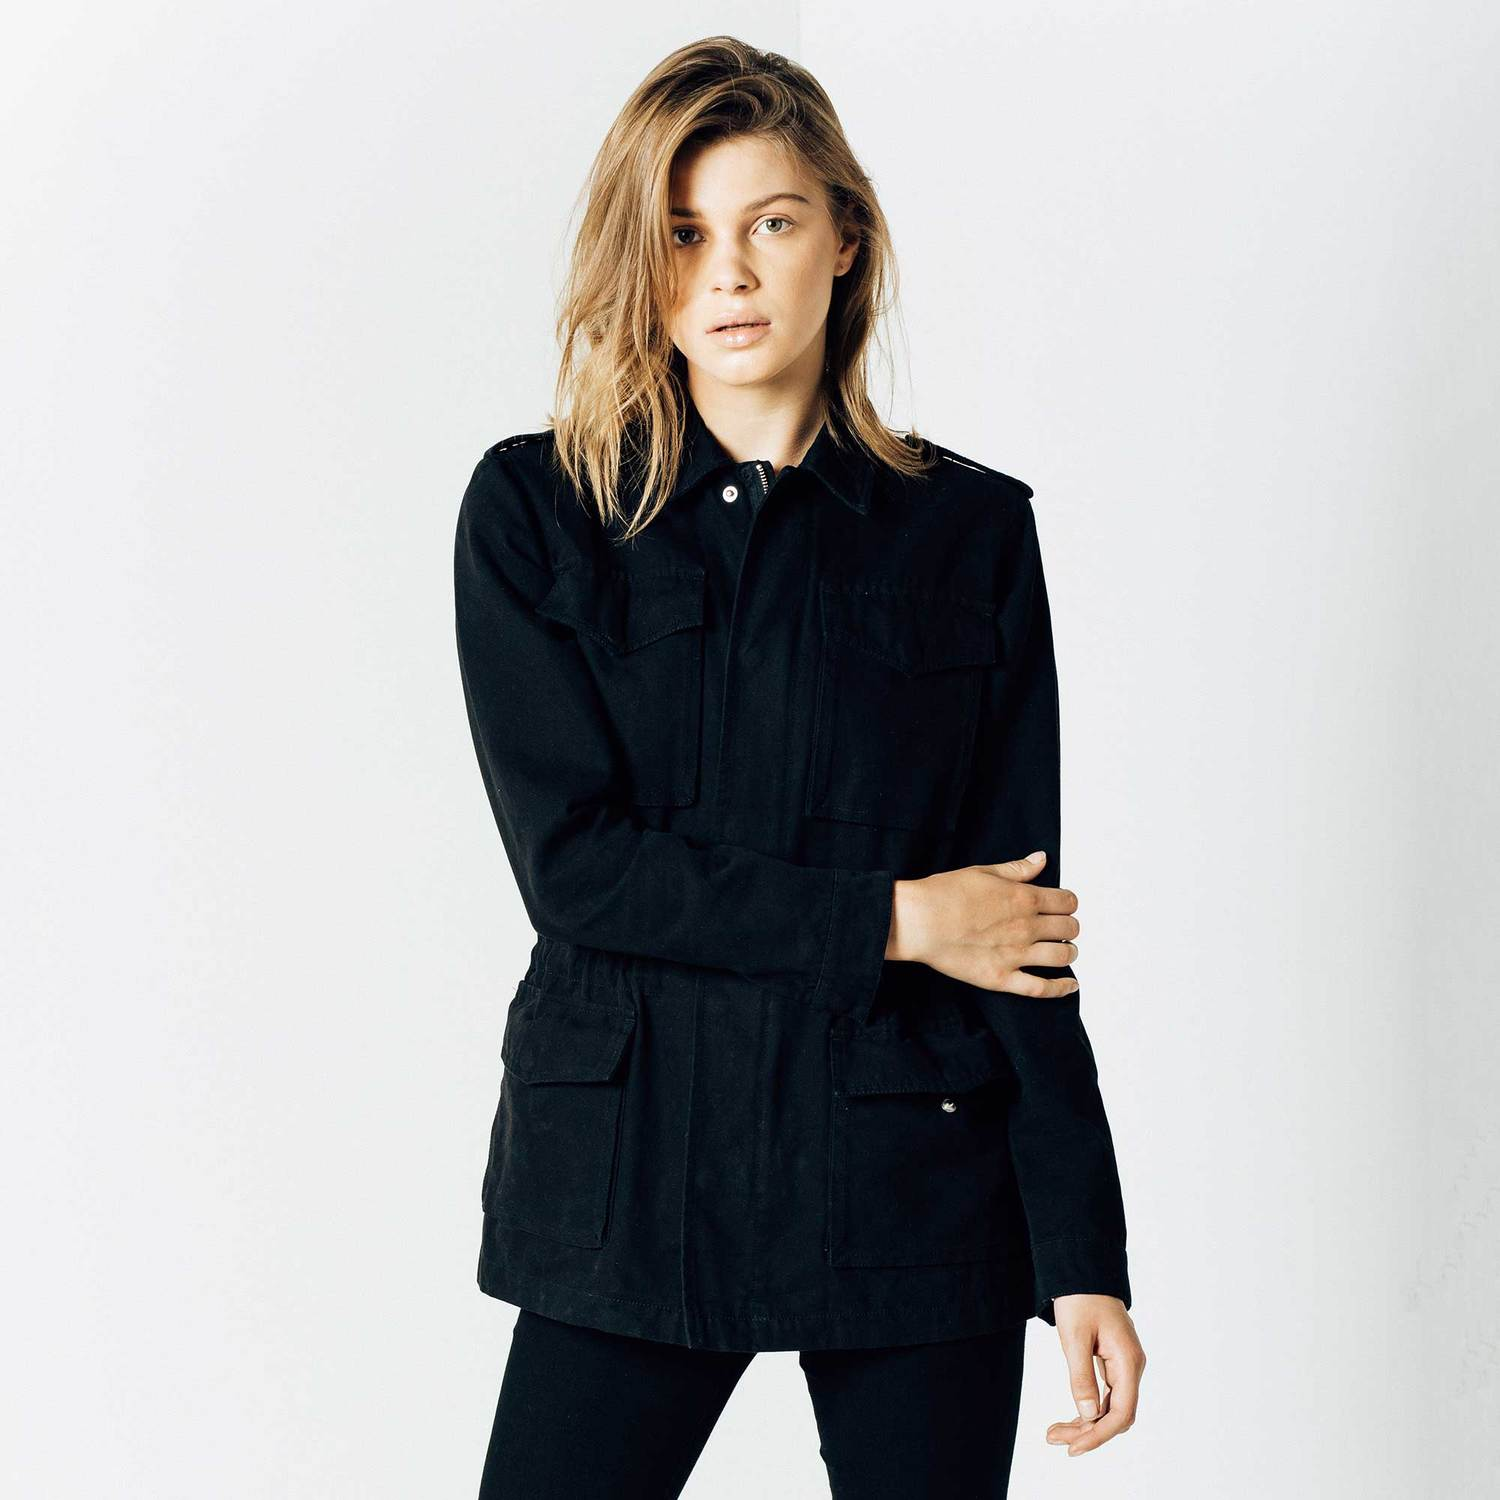 Womens Military Jacket In Black $95 | DSTLD